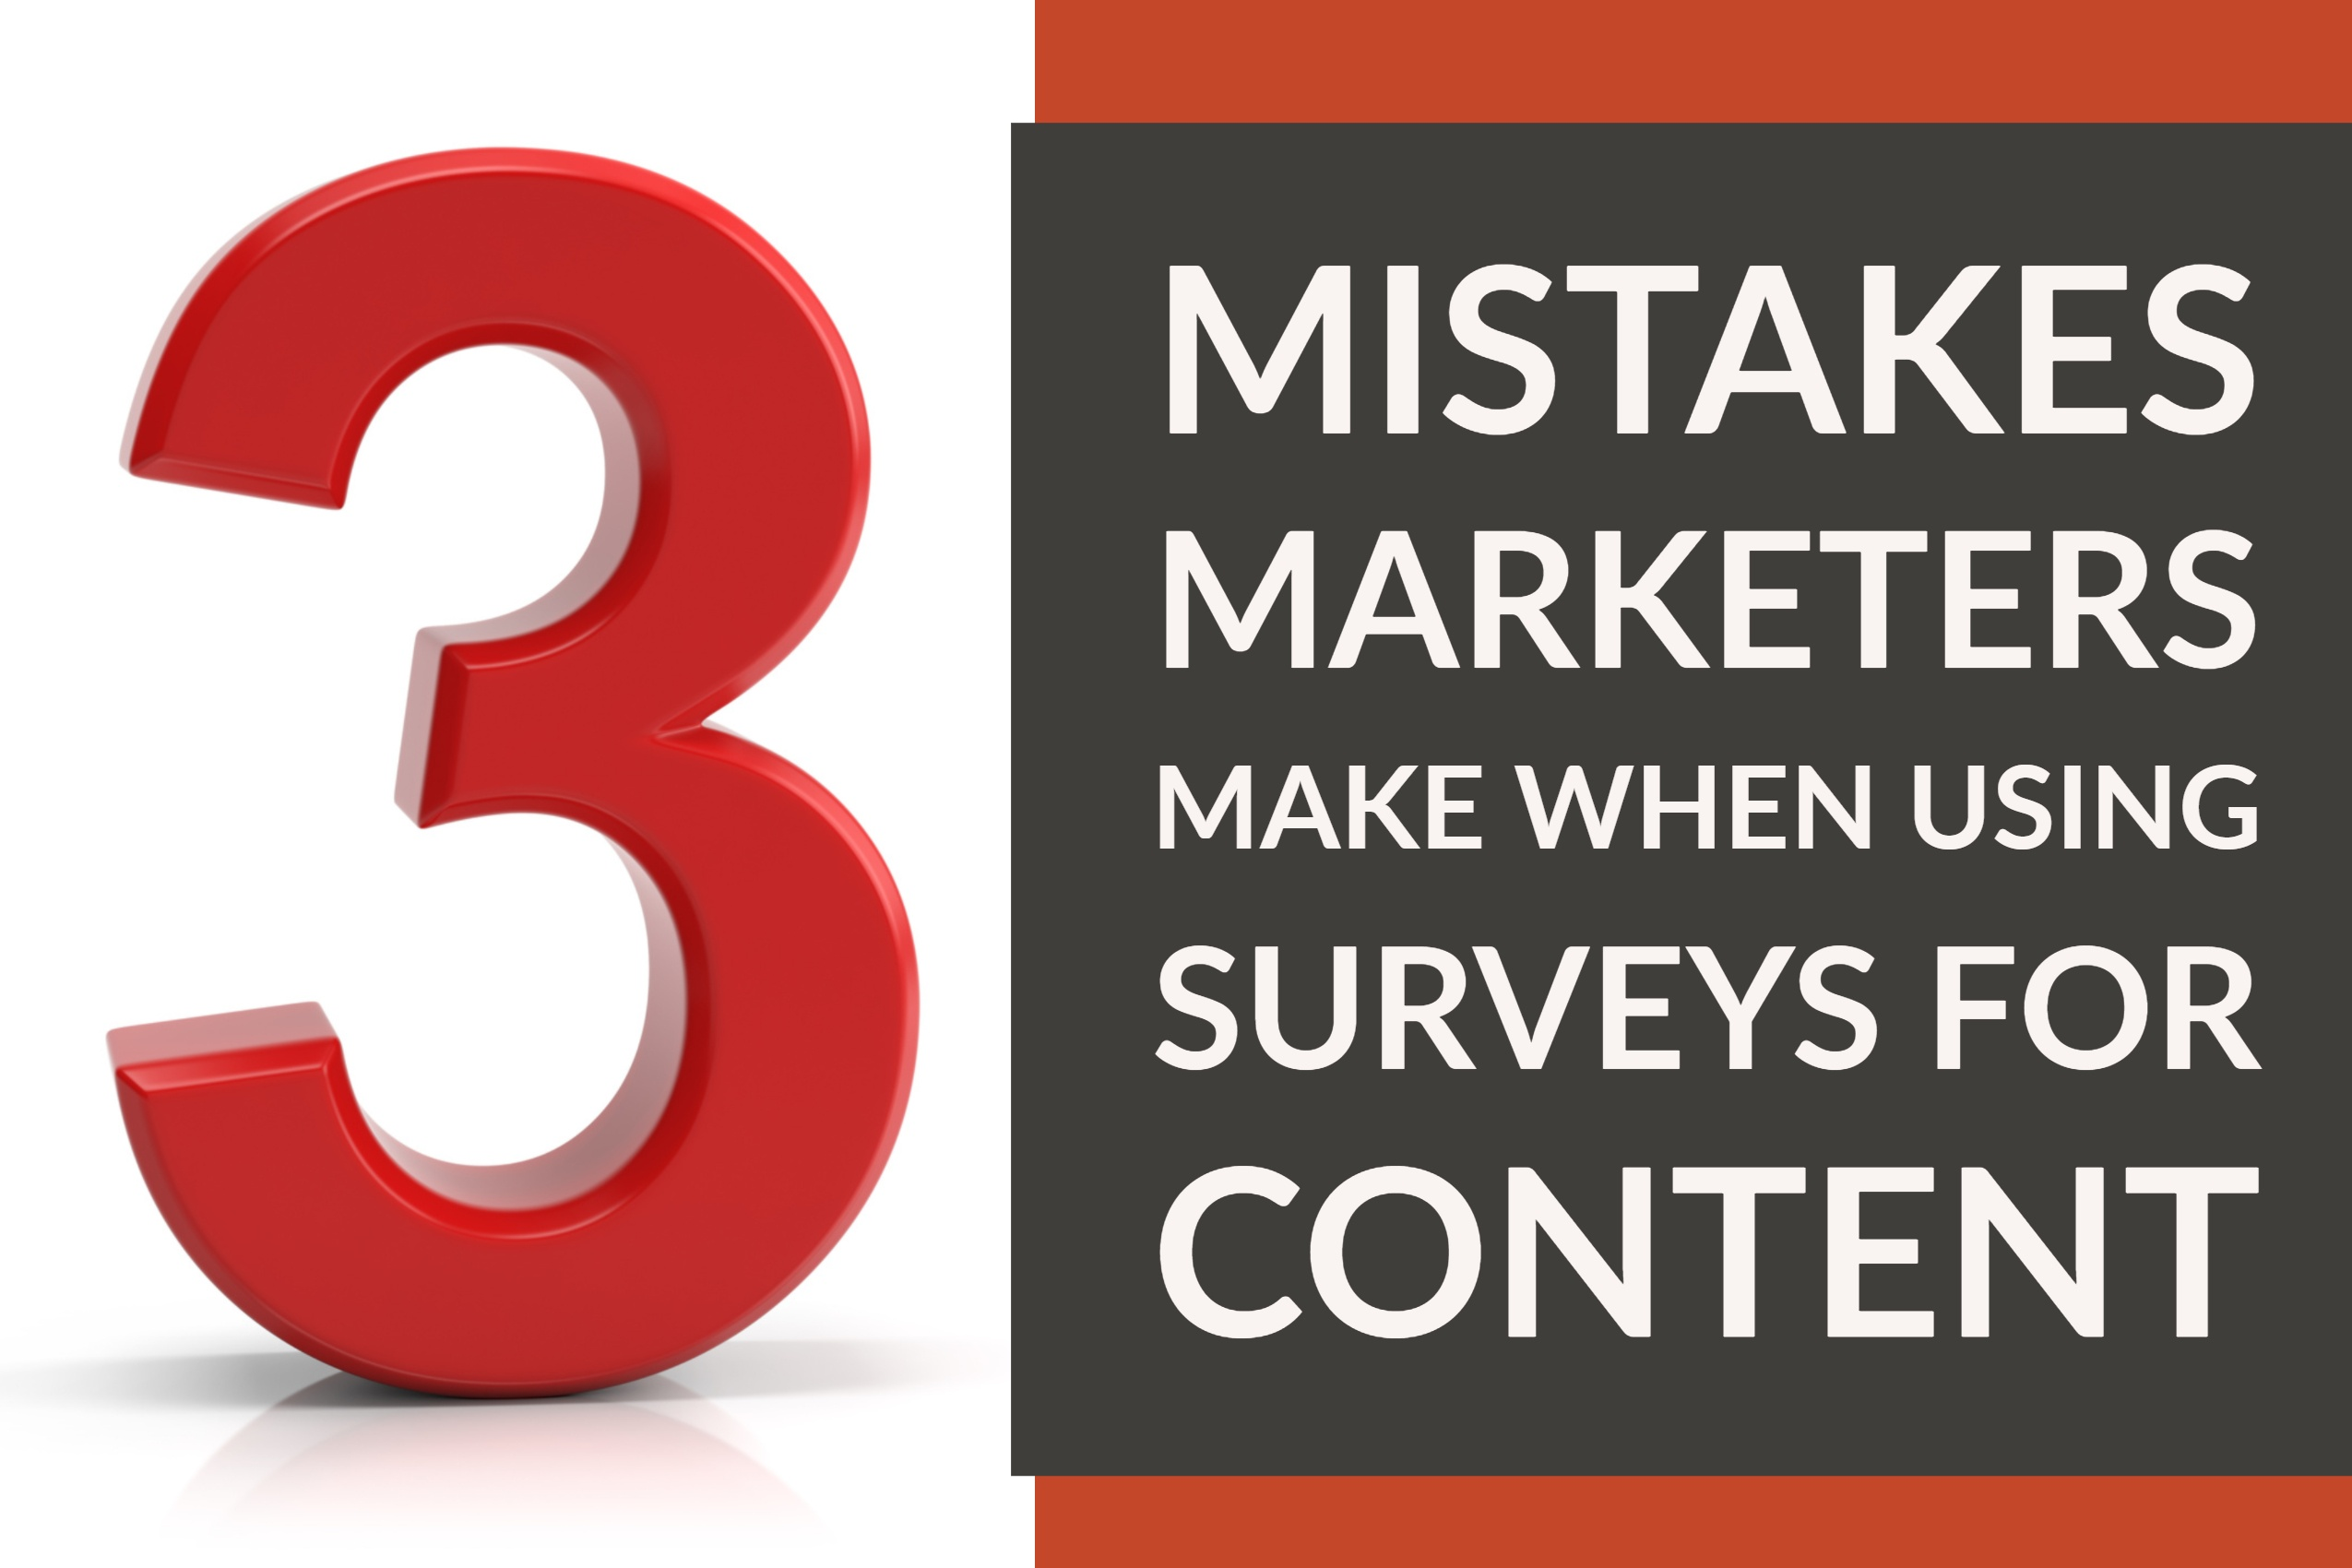 3 Mistakes Marketers Make When Using Surveys For Content